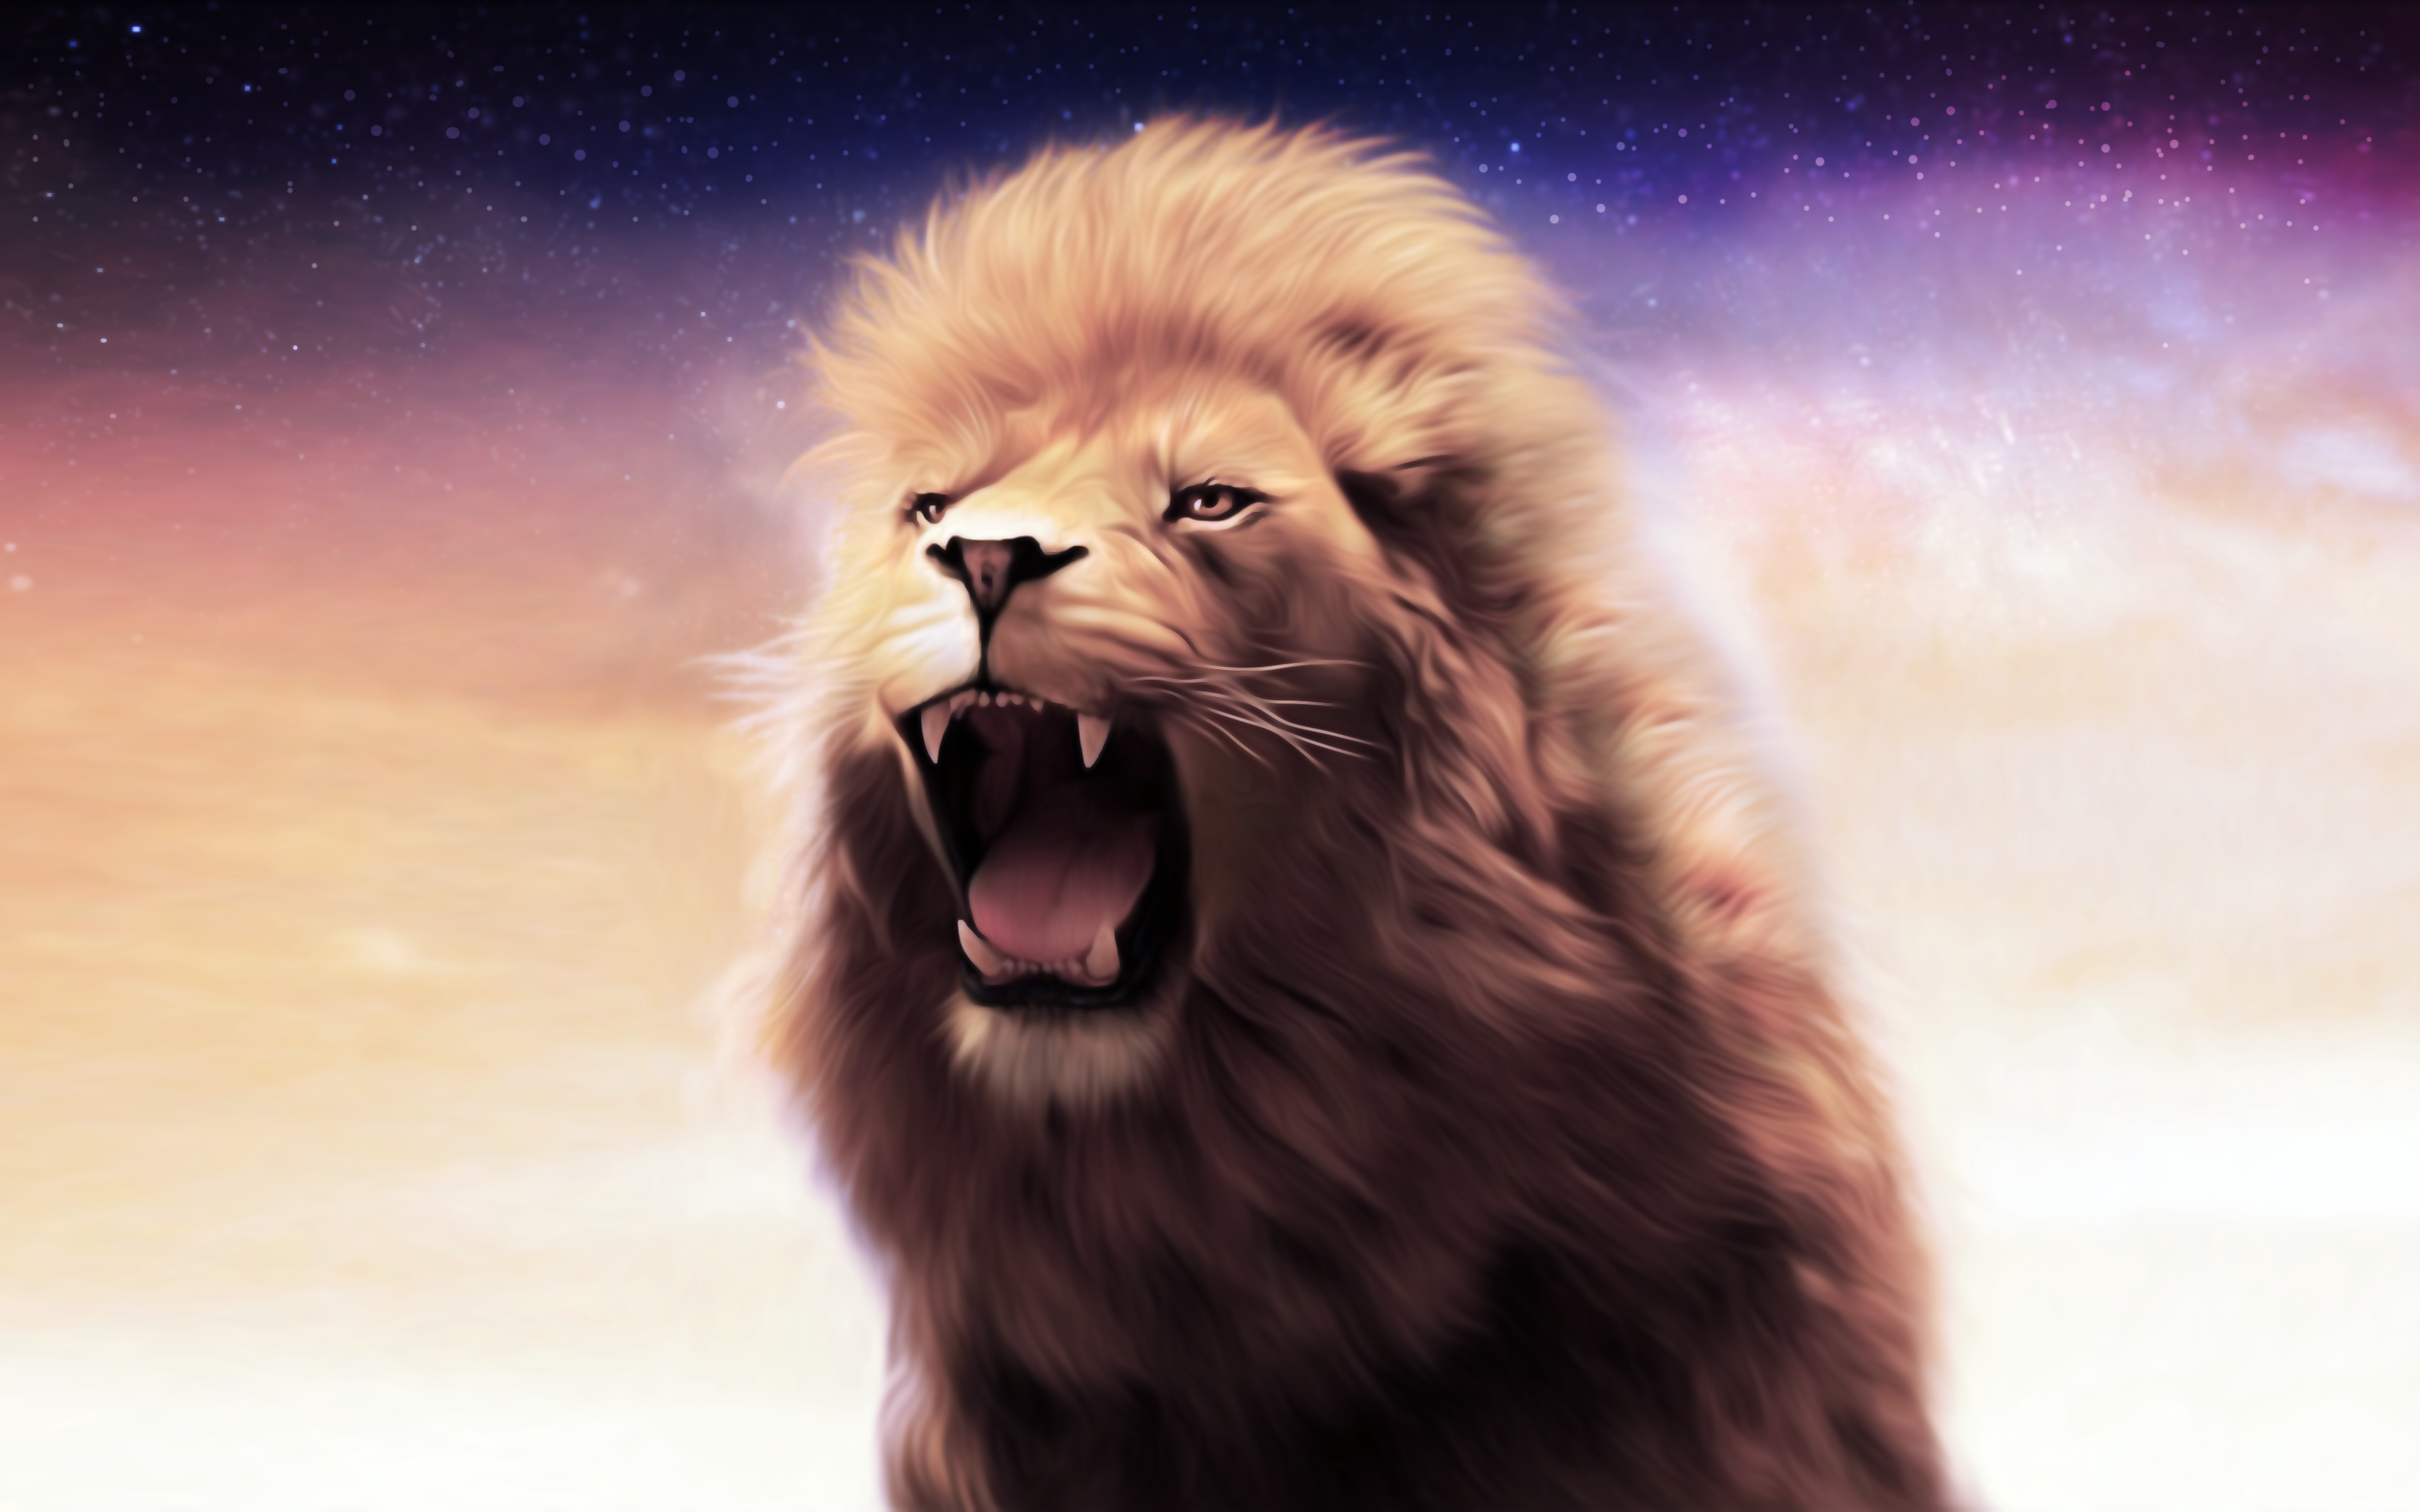 OSX Lion Wallpaper High Definition Wallpapers High Definition 3200x2000